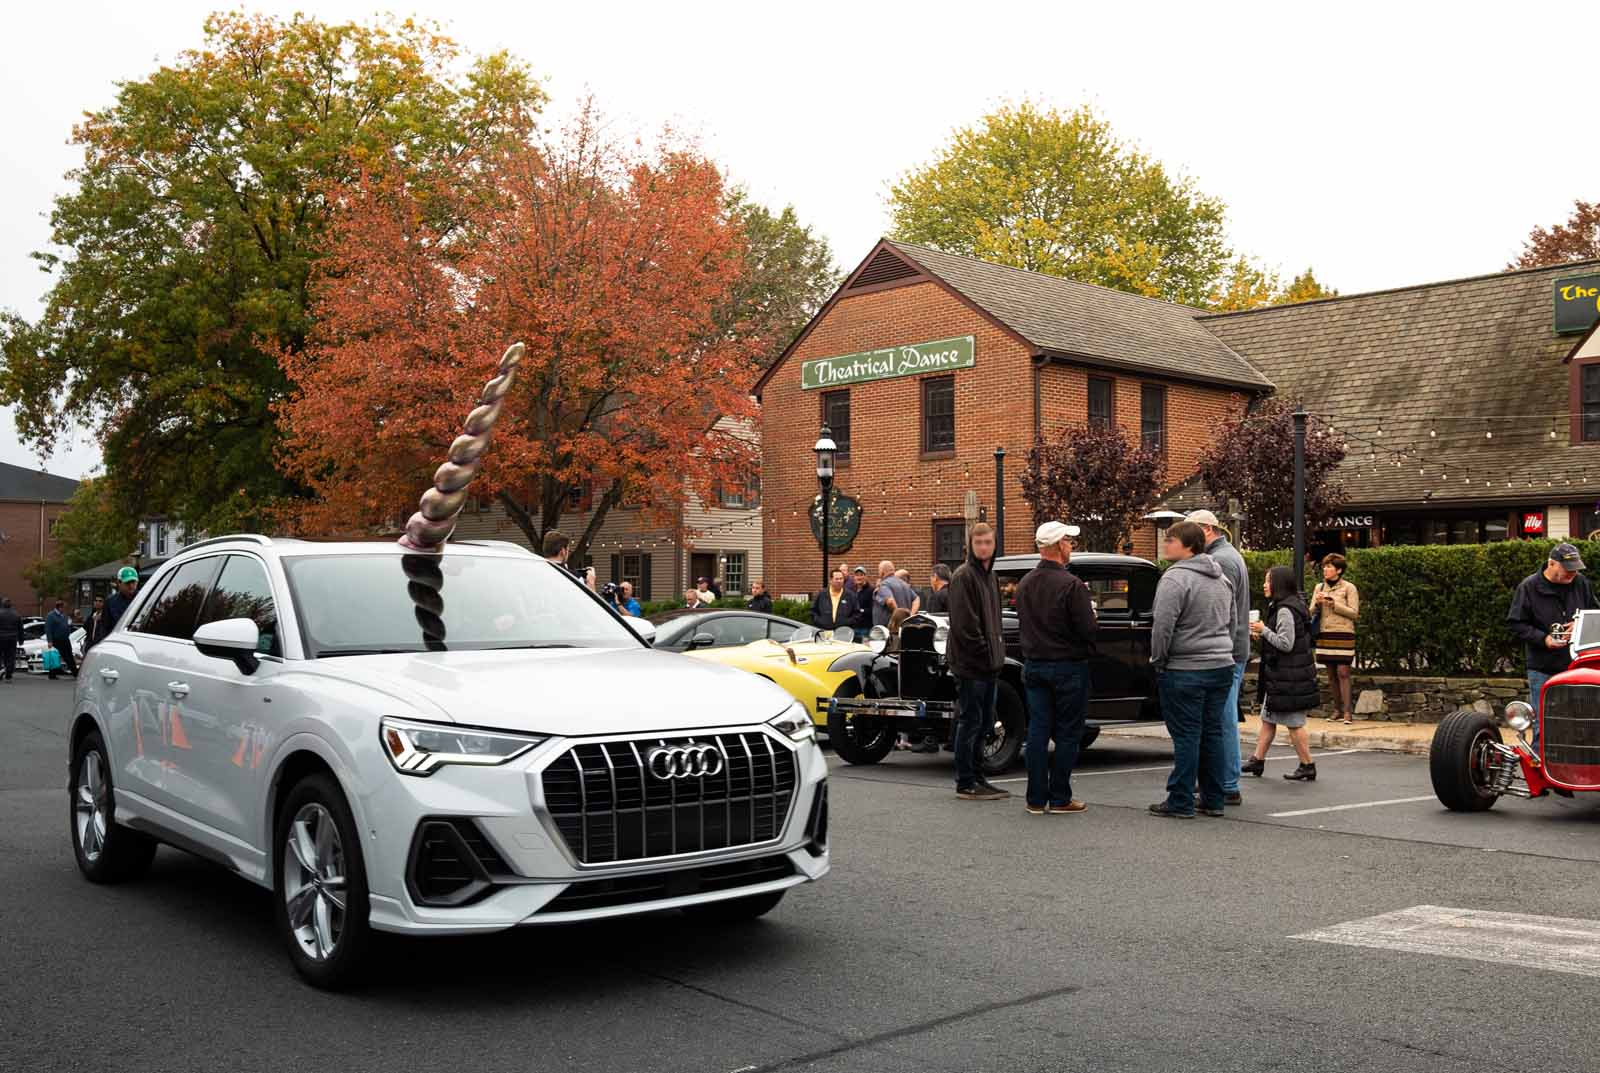 Audi-brings-the-Audi-Q3-unicorn-inspired-social-media-post-to-life-for-those-who----Hold-Nothing-Back----6288